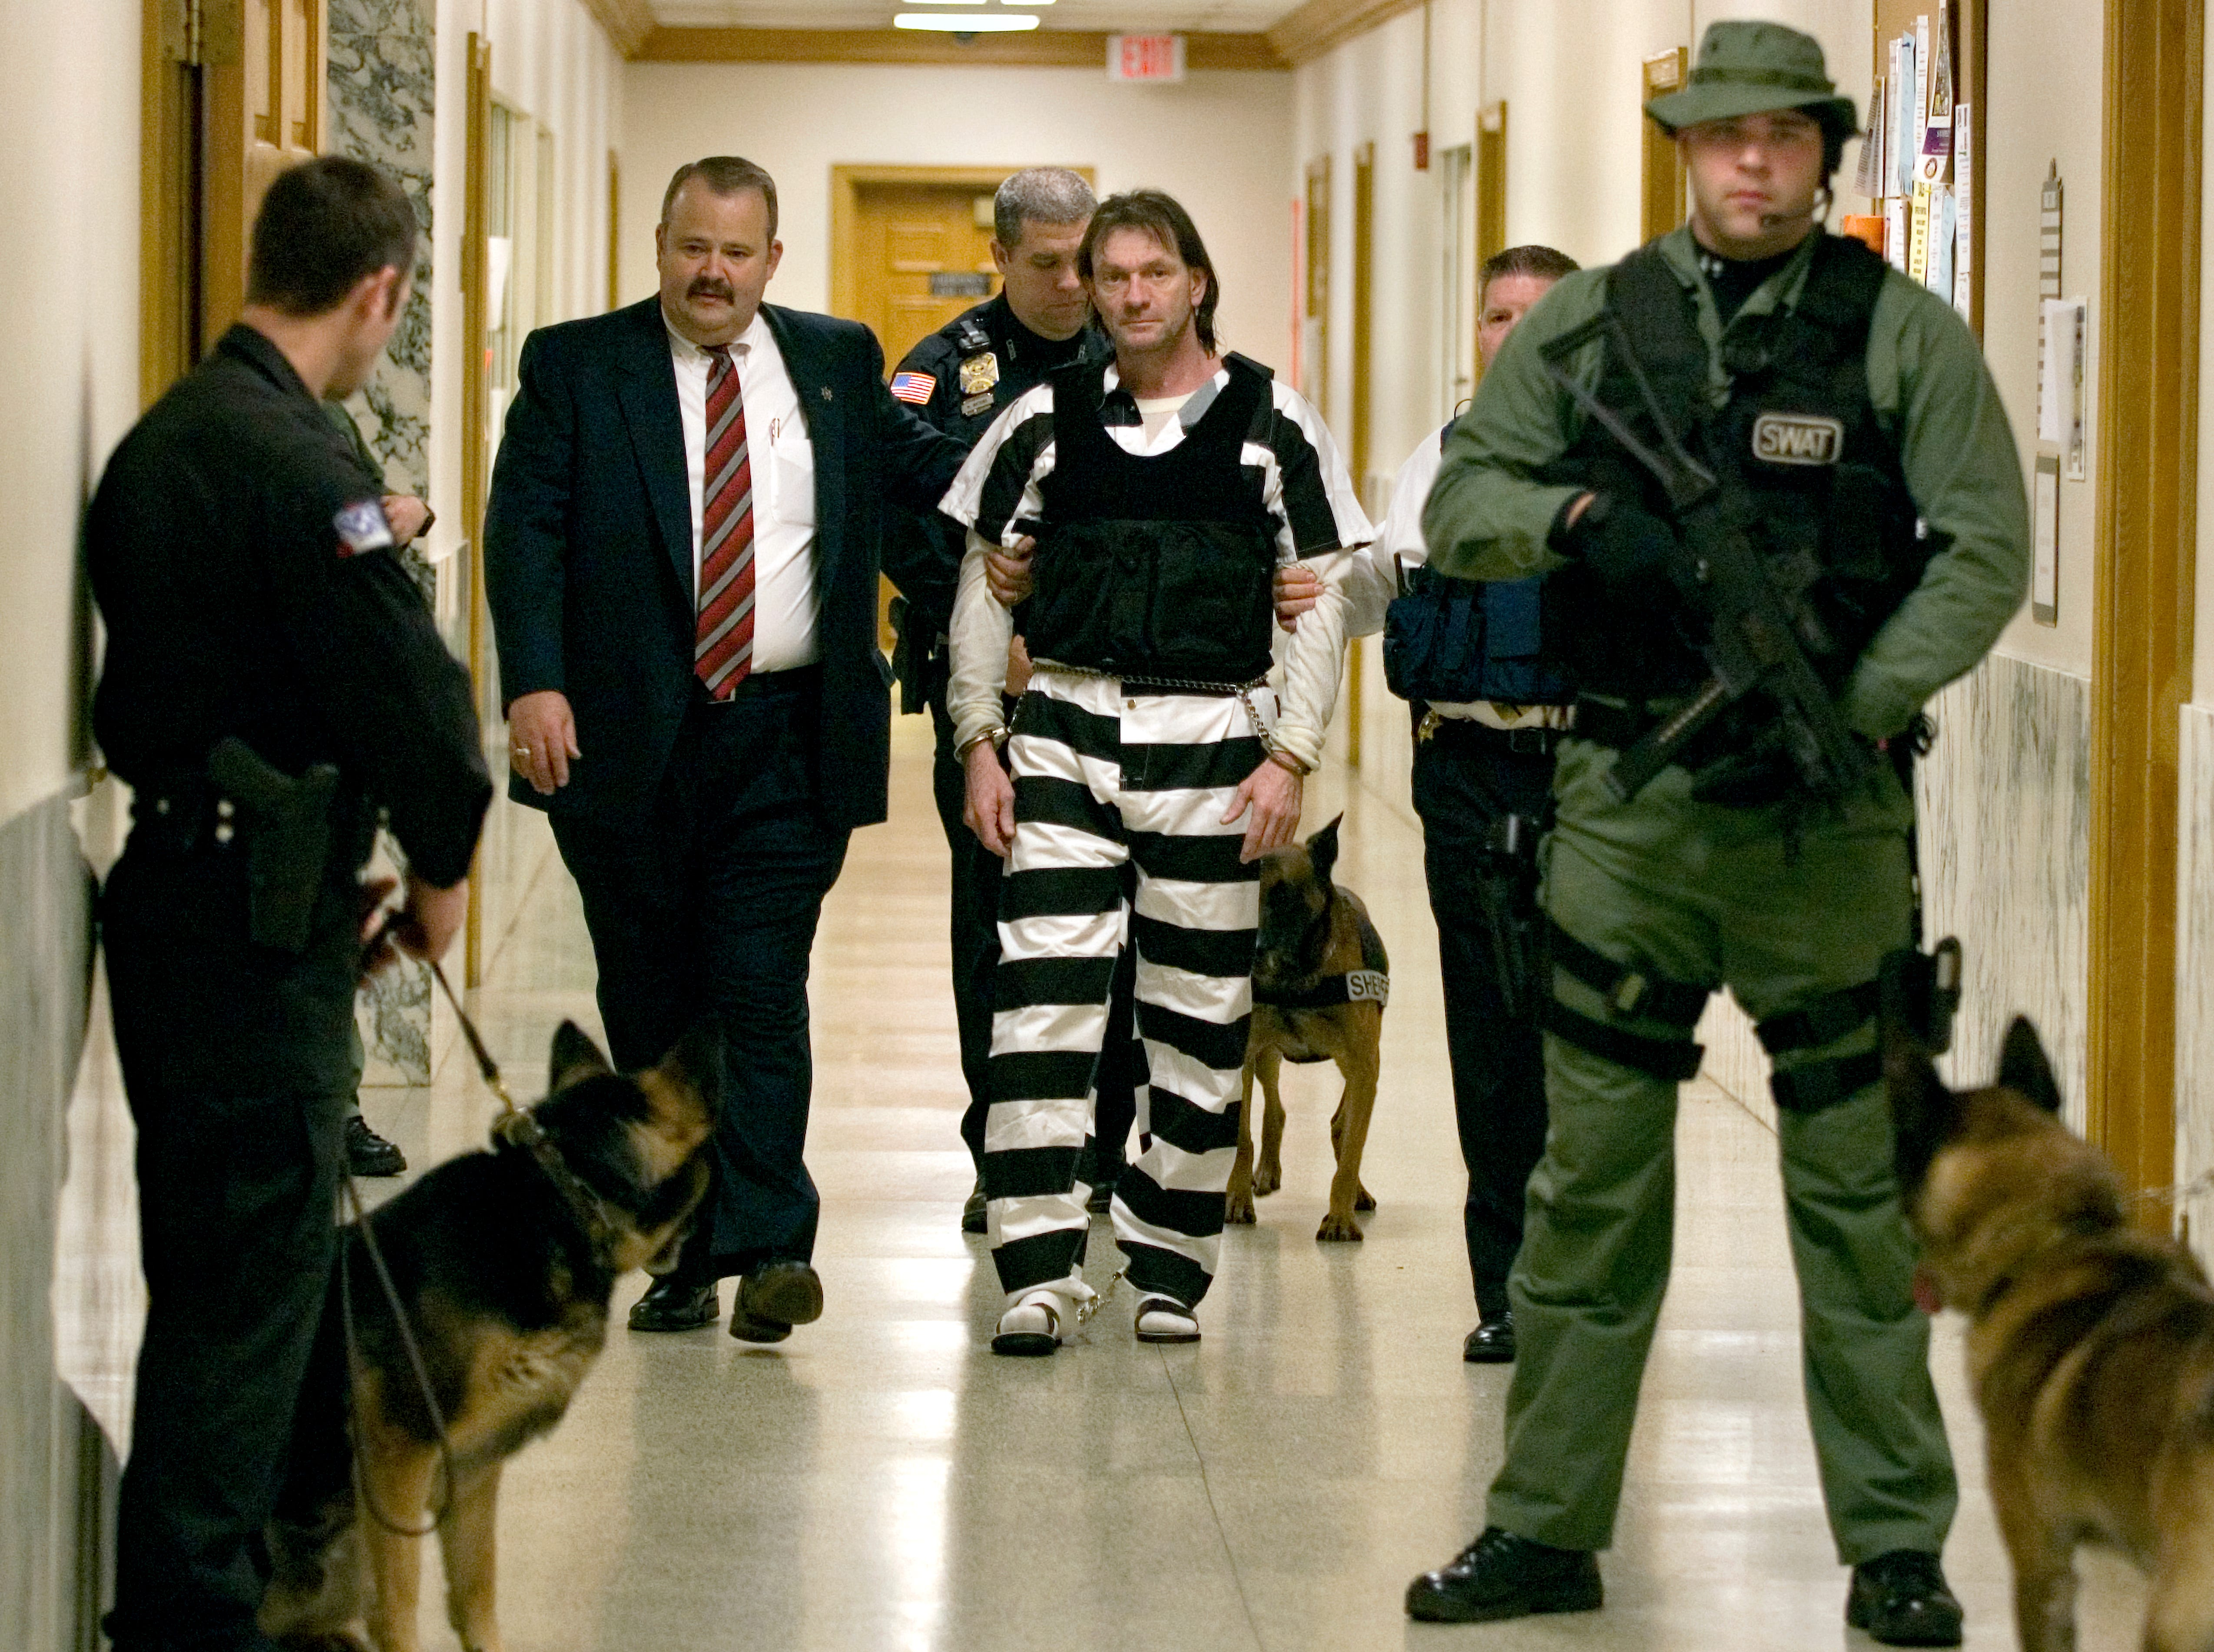 Clifford Leon Houston, 47, is lead into a courtroom in Roane County to hear the result of a mental evaluation Friday. He was found competent to stand trail in the fatal shooting of Roane County Sheriff's Deputy Birl Jones, 53, and ride-along partner Gerald Michael Brown, 44.  1/12/07